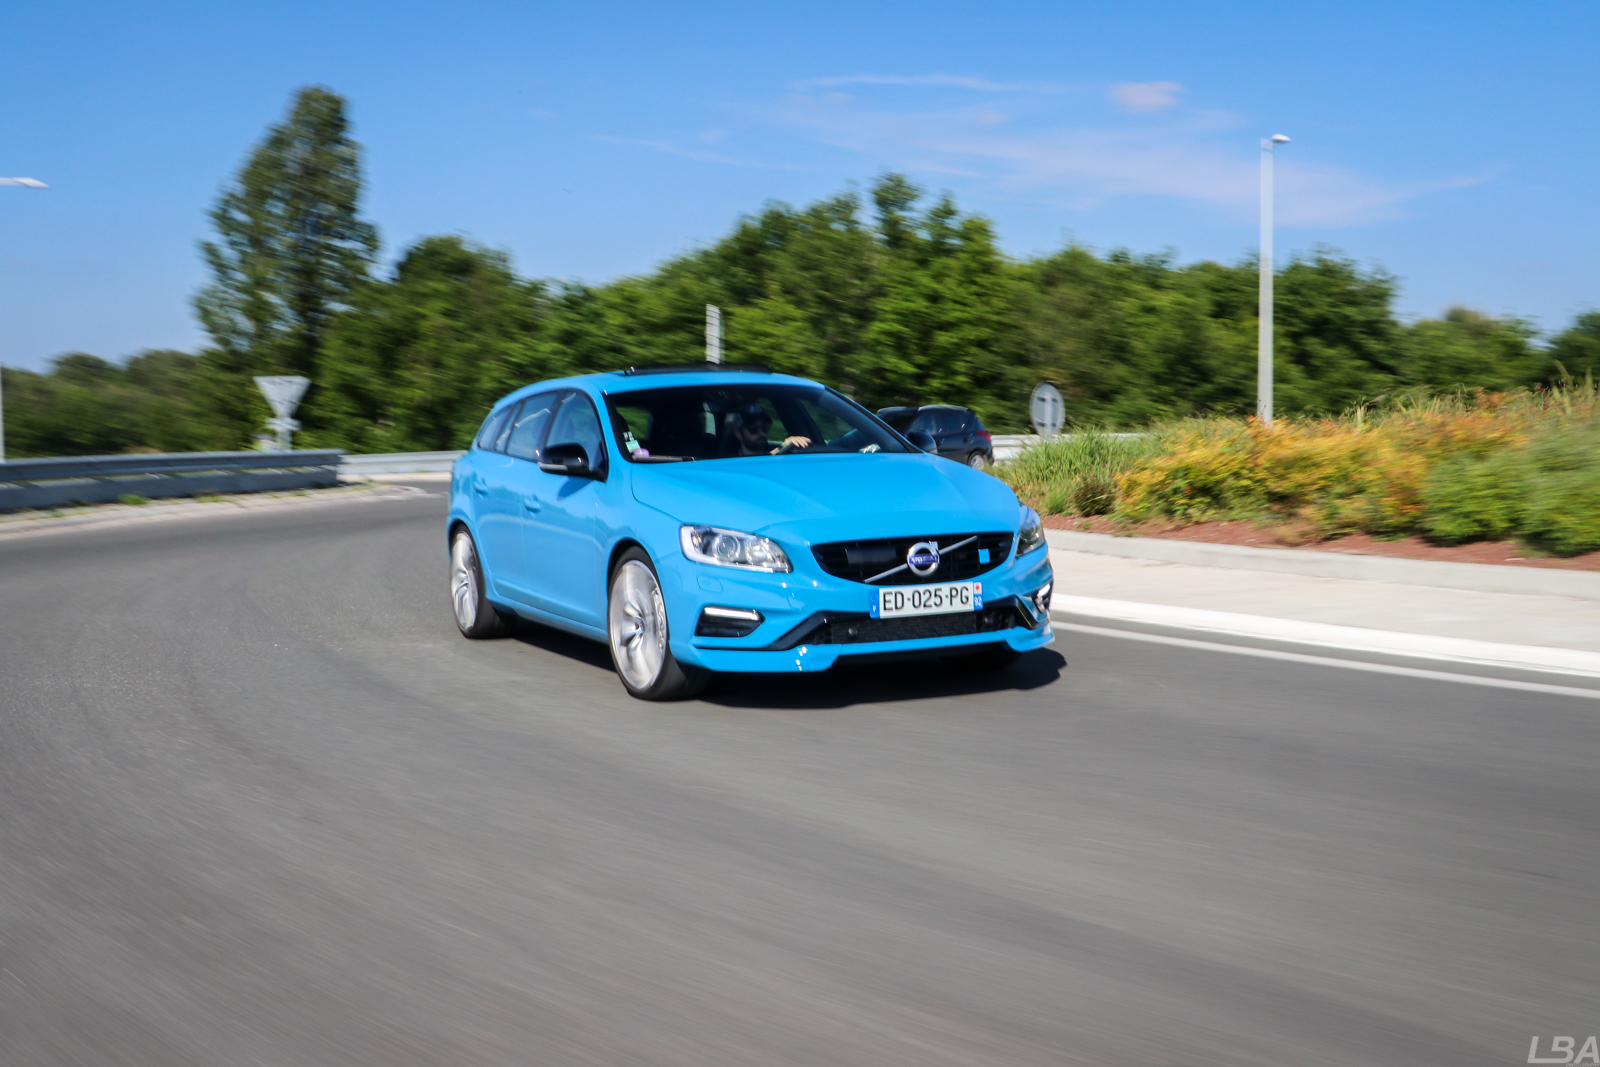 essai volvo v60 polestar le billet auto test drive. Black Bedroom Furniture Sets. Home Design Ideas